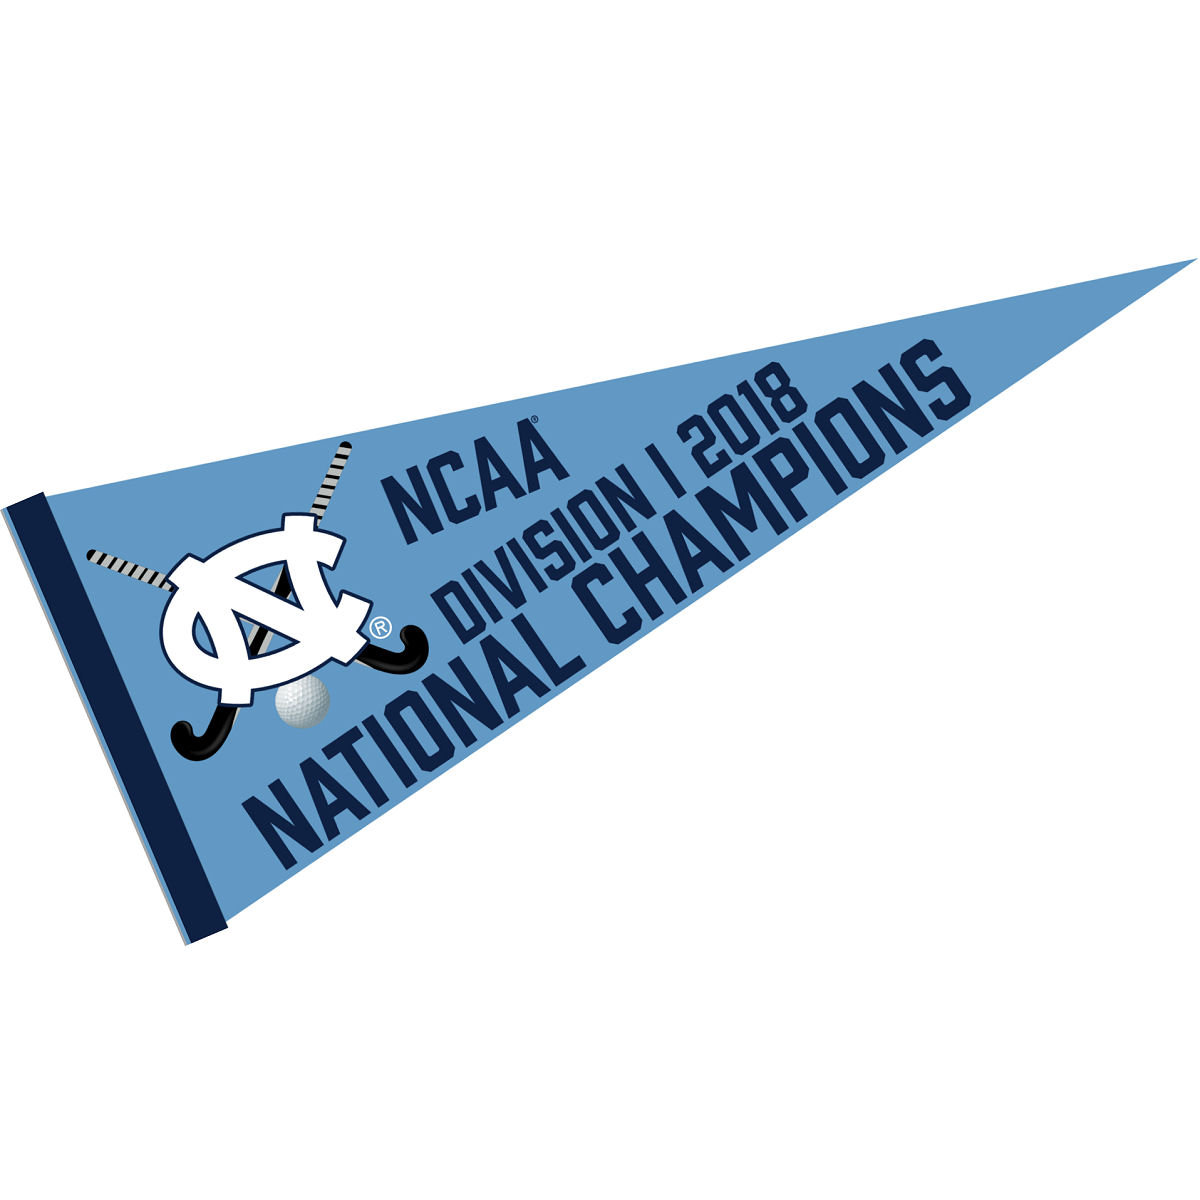 "University of North Carolina Tar Heels 2018 Womens Field Hockey Champions 12"" X 30"" Felt College Pennant"